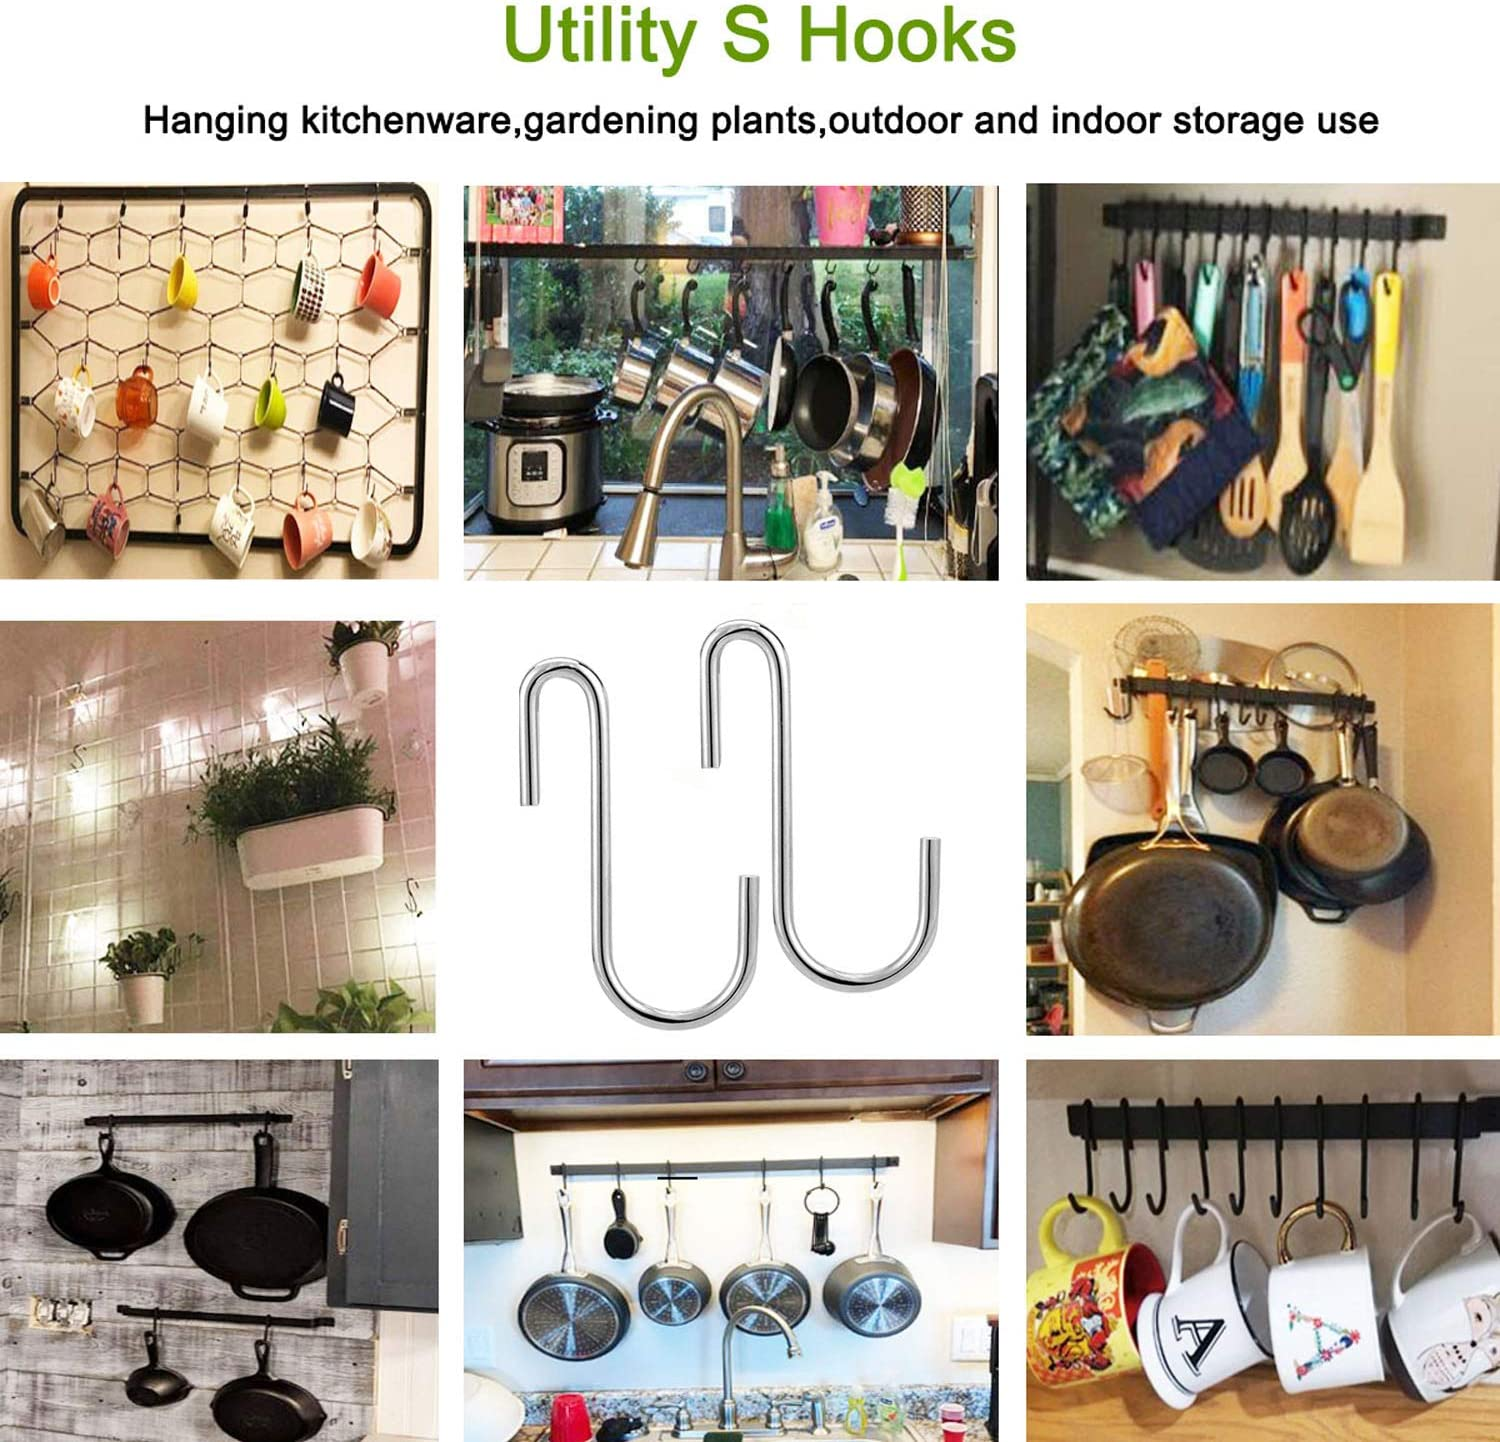 10 S Shaped Hooks for Bathroom Bedroom Office Kitchen to Hang Pots Pans Plants